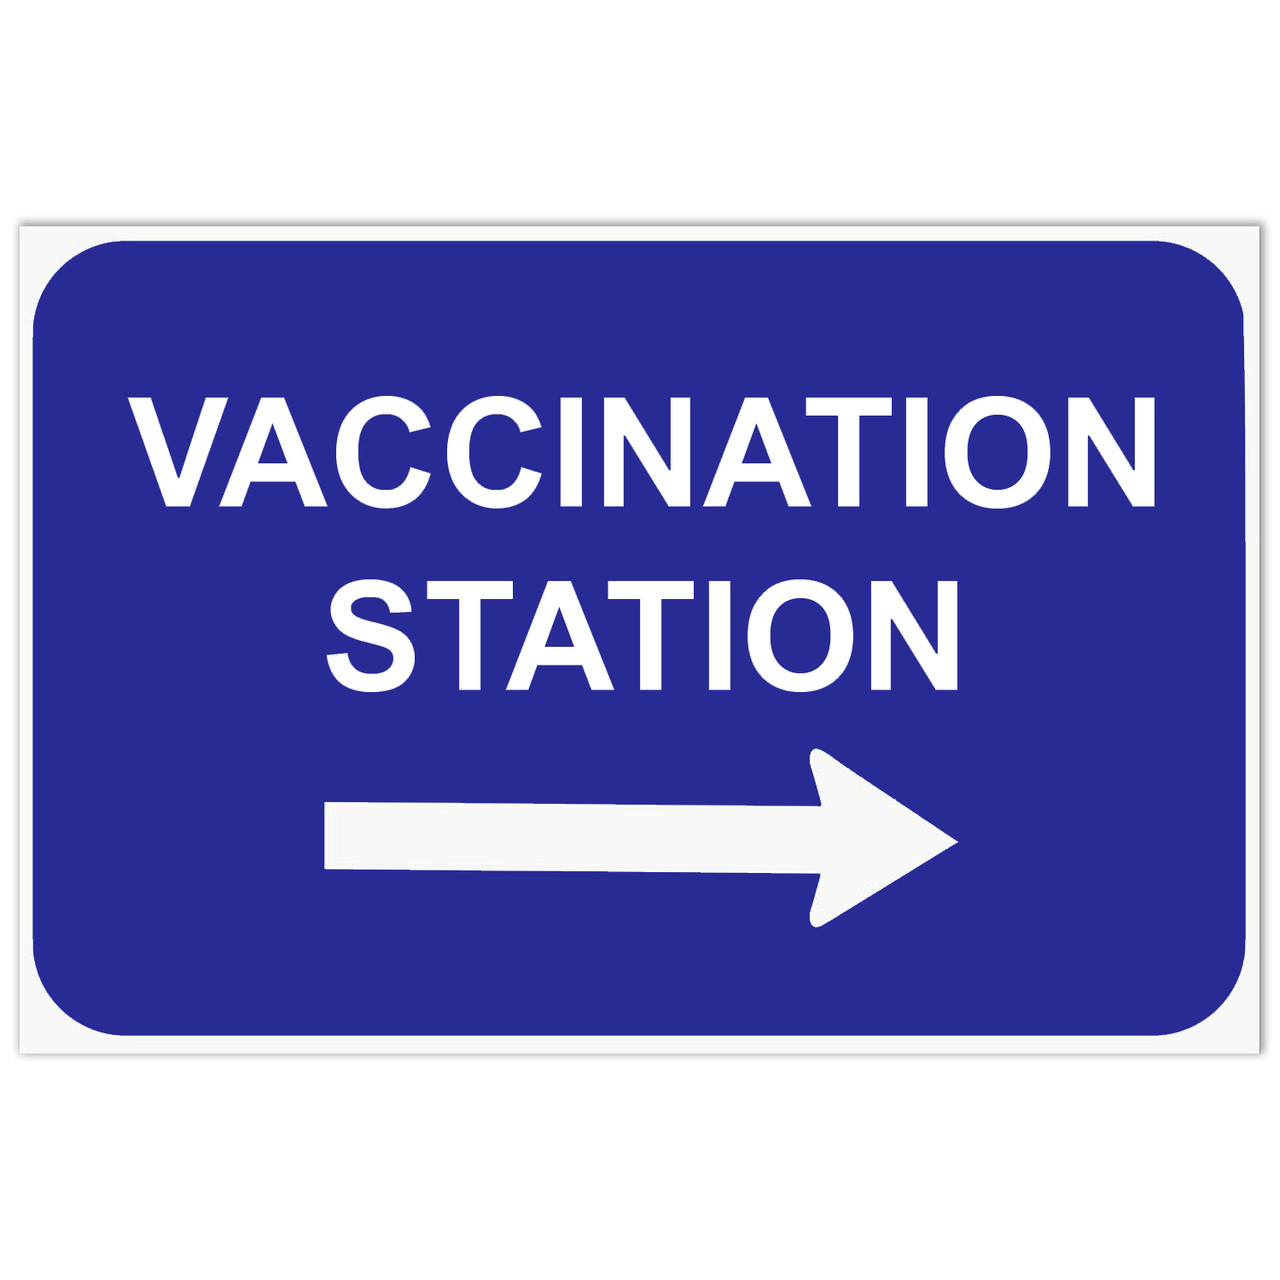 Vaccination Station Parking Sign, Blue with right arrow